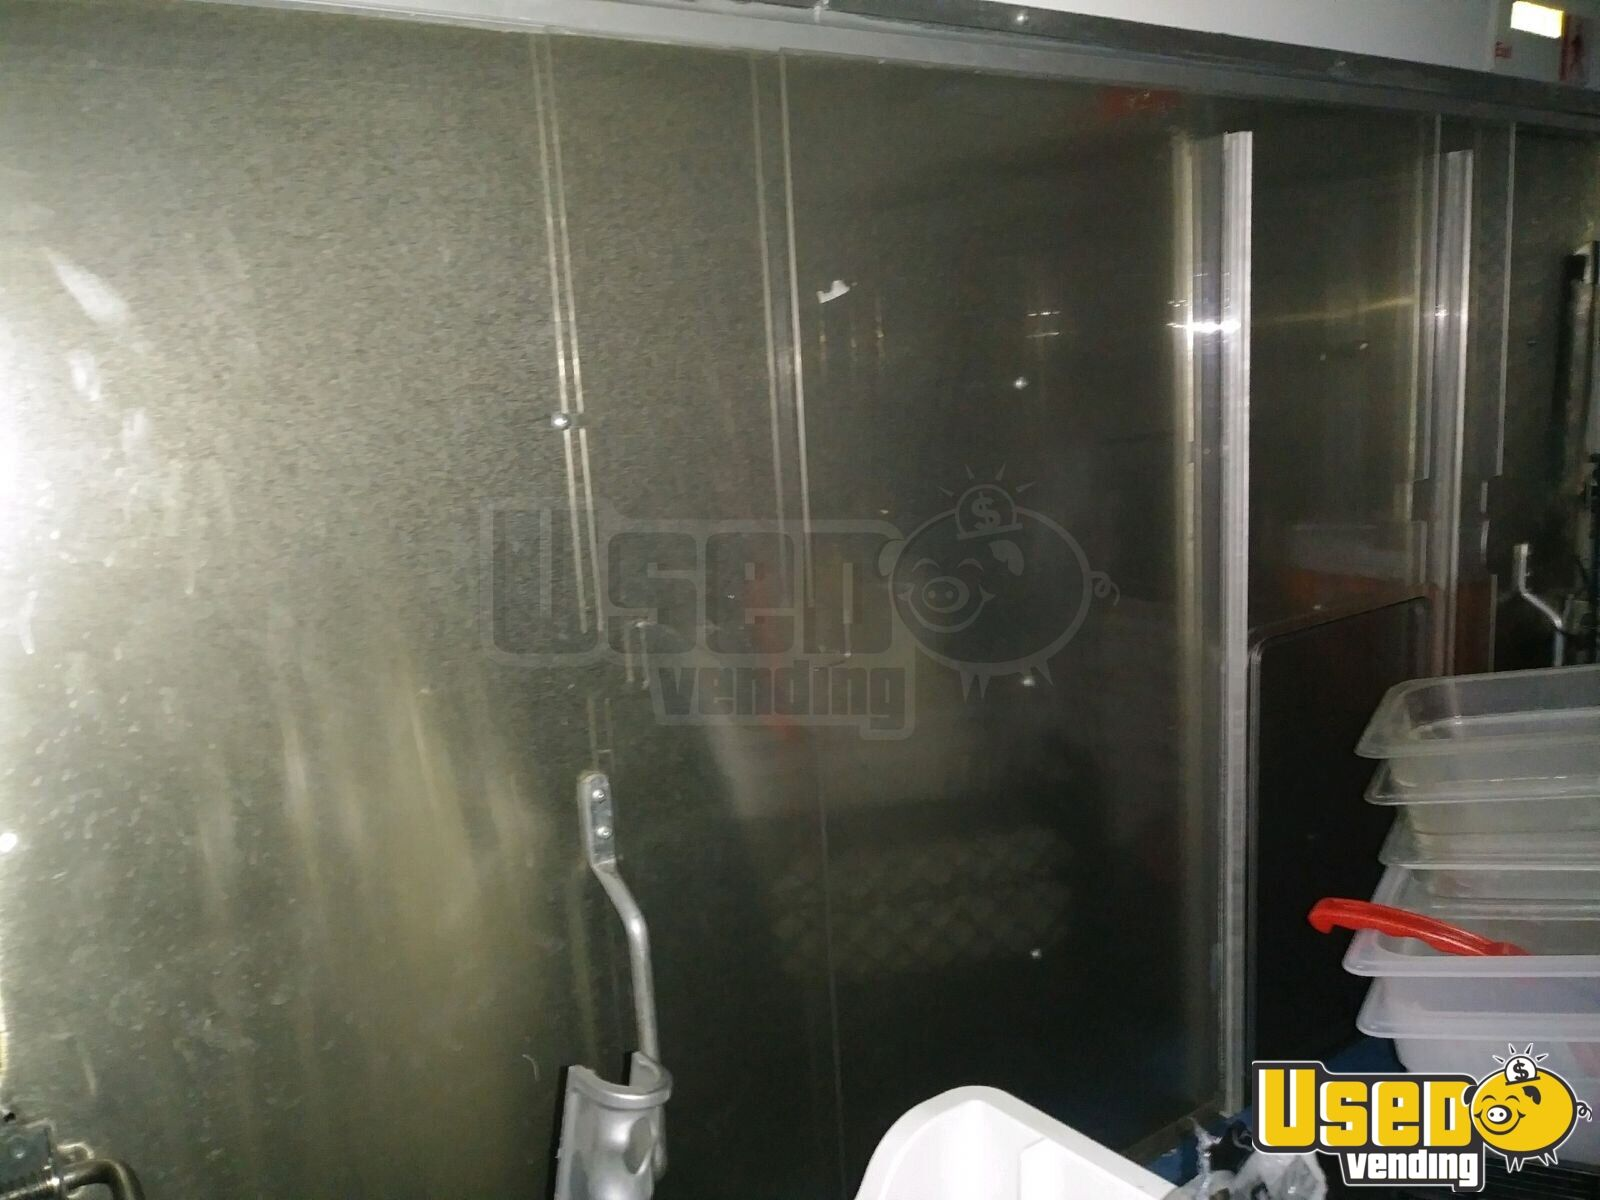 2004 Food Concession Trailer Concession Trailer Fire Extinguisher California for Sale - 13